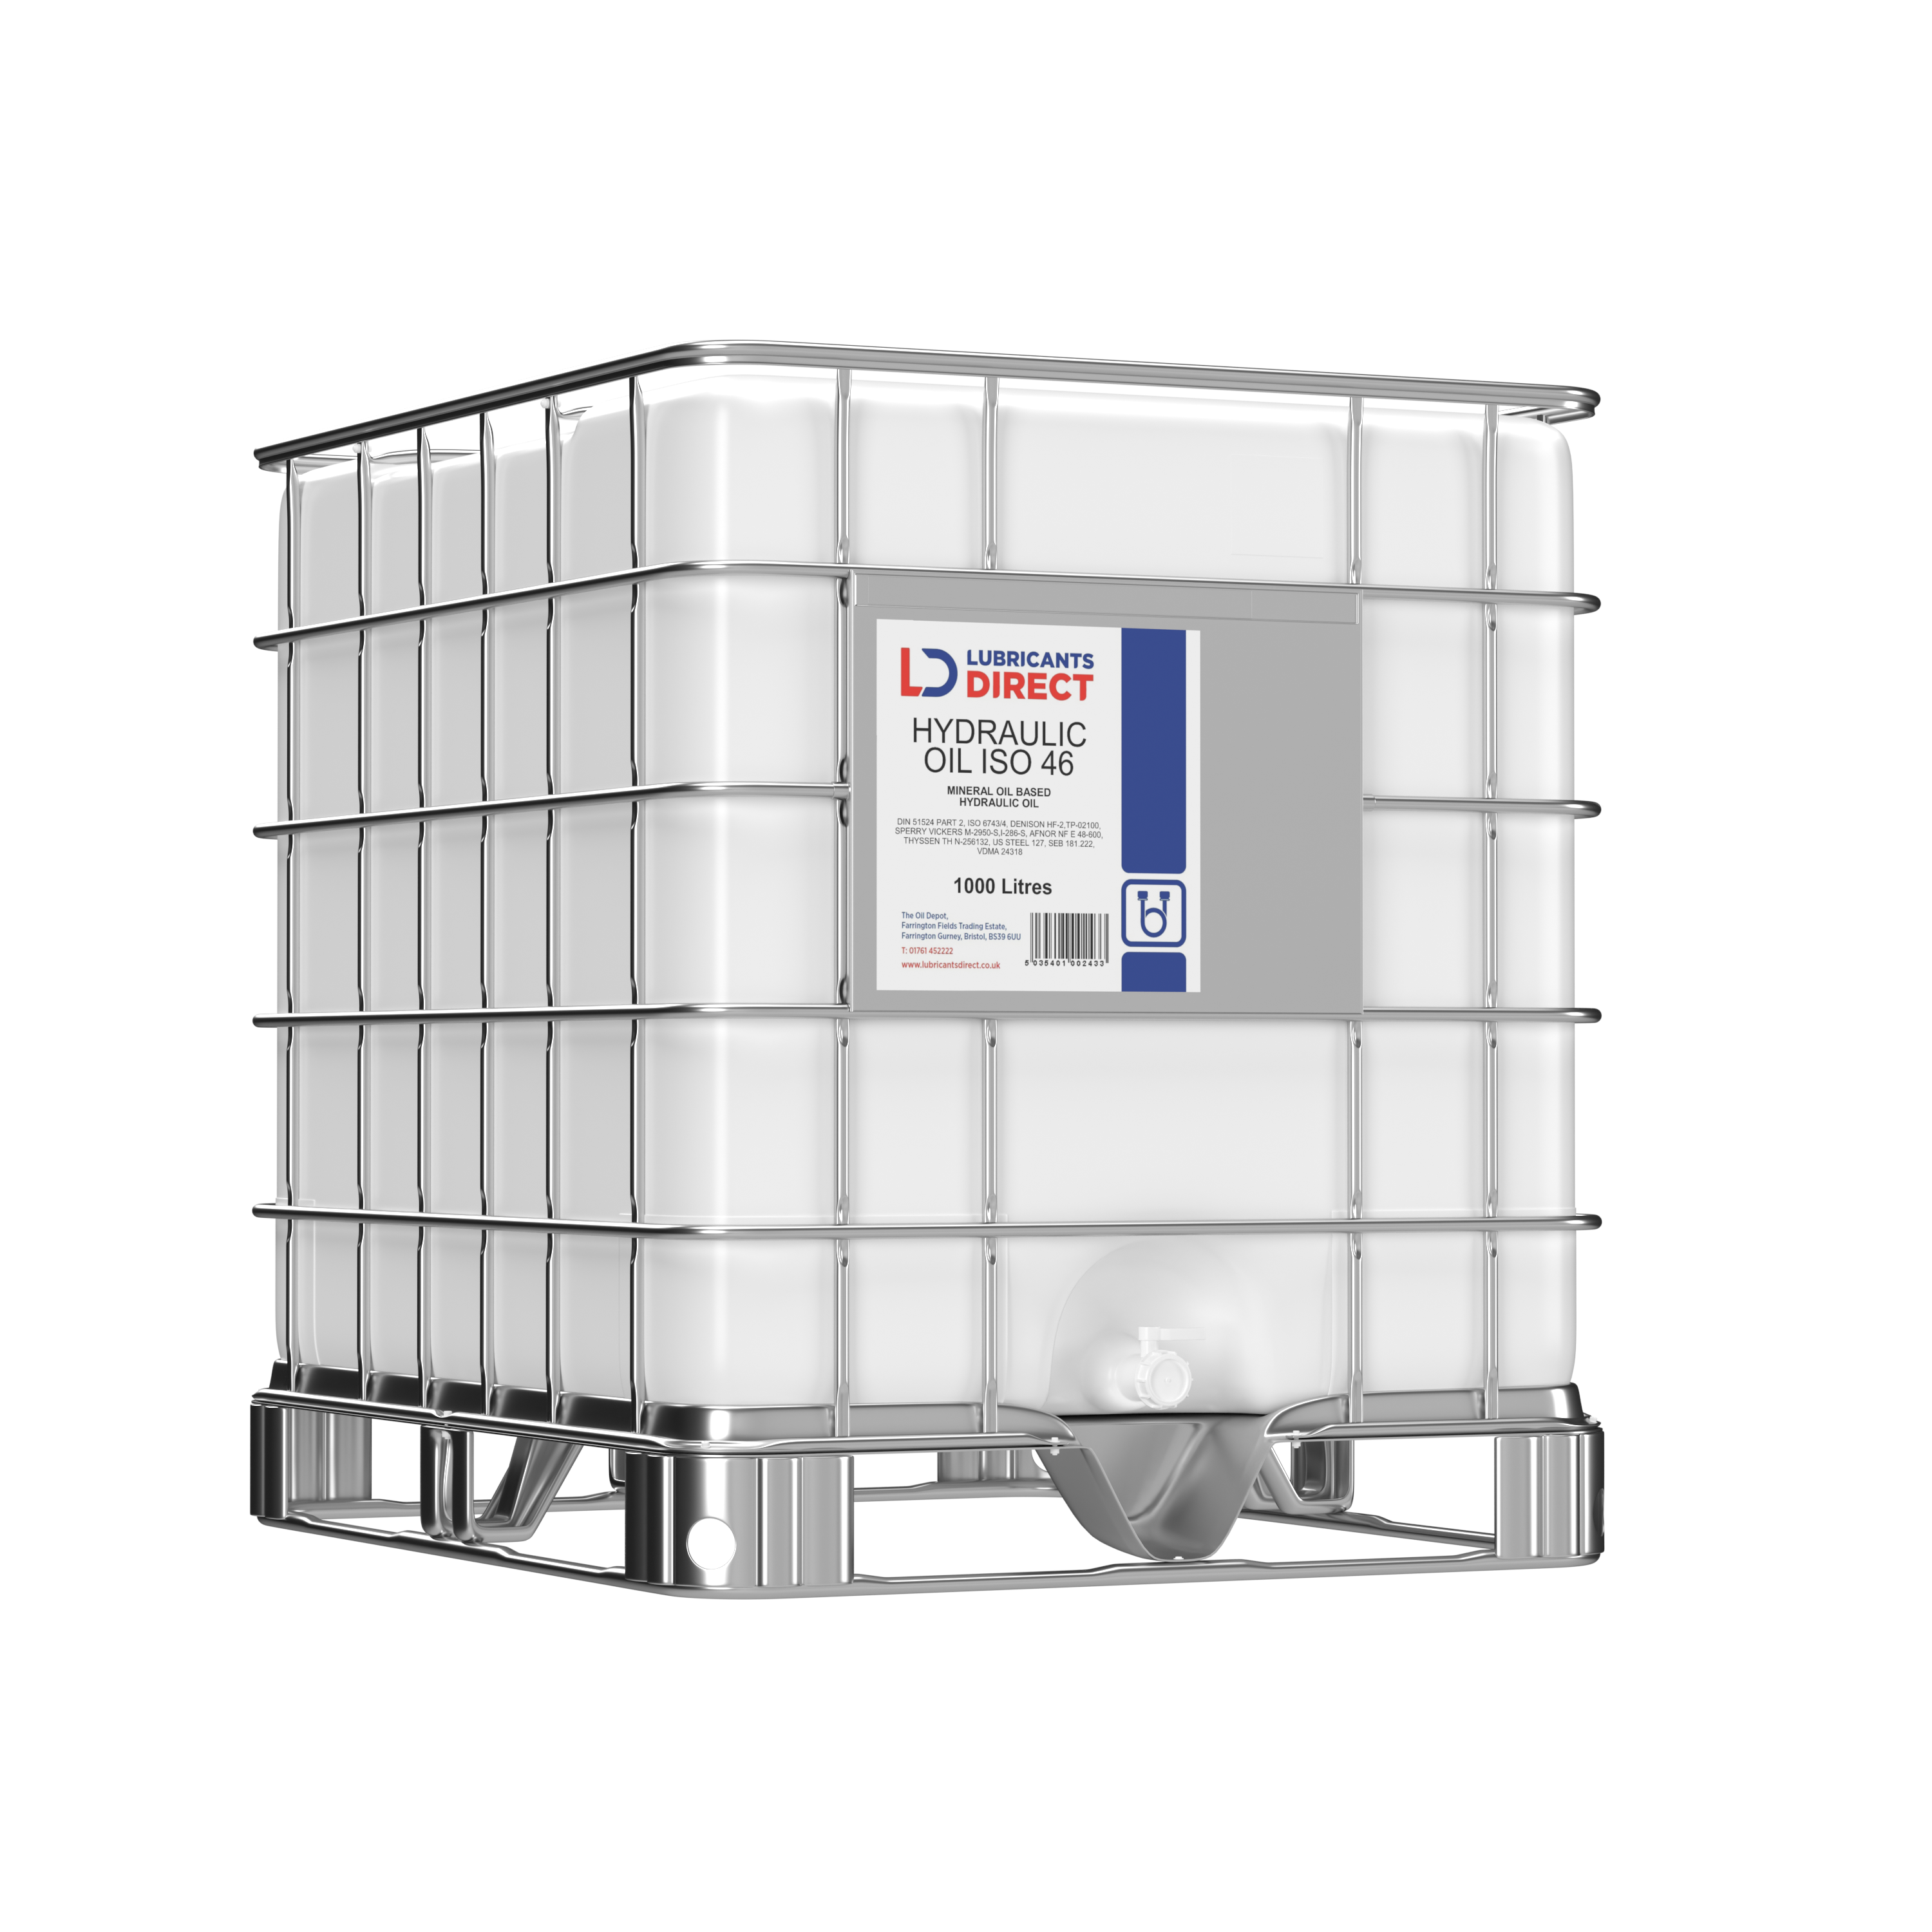 https://commercial.fordfuels.co.uk/wp-content/uploads/sites/10/IBC-HYDRAULIC-OIL-ISO46-350x350.png+https://commercial.fordfuels.co.uk/wp-content/uploads/sites/10/IBC-HYDRAULIC-OIL-ISO46-700x700.png